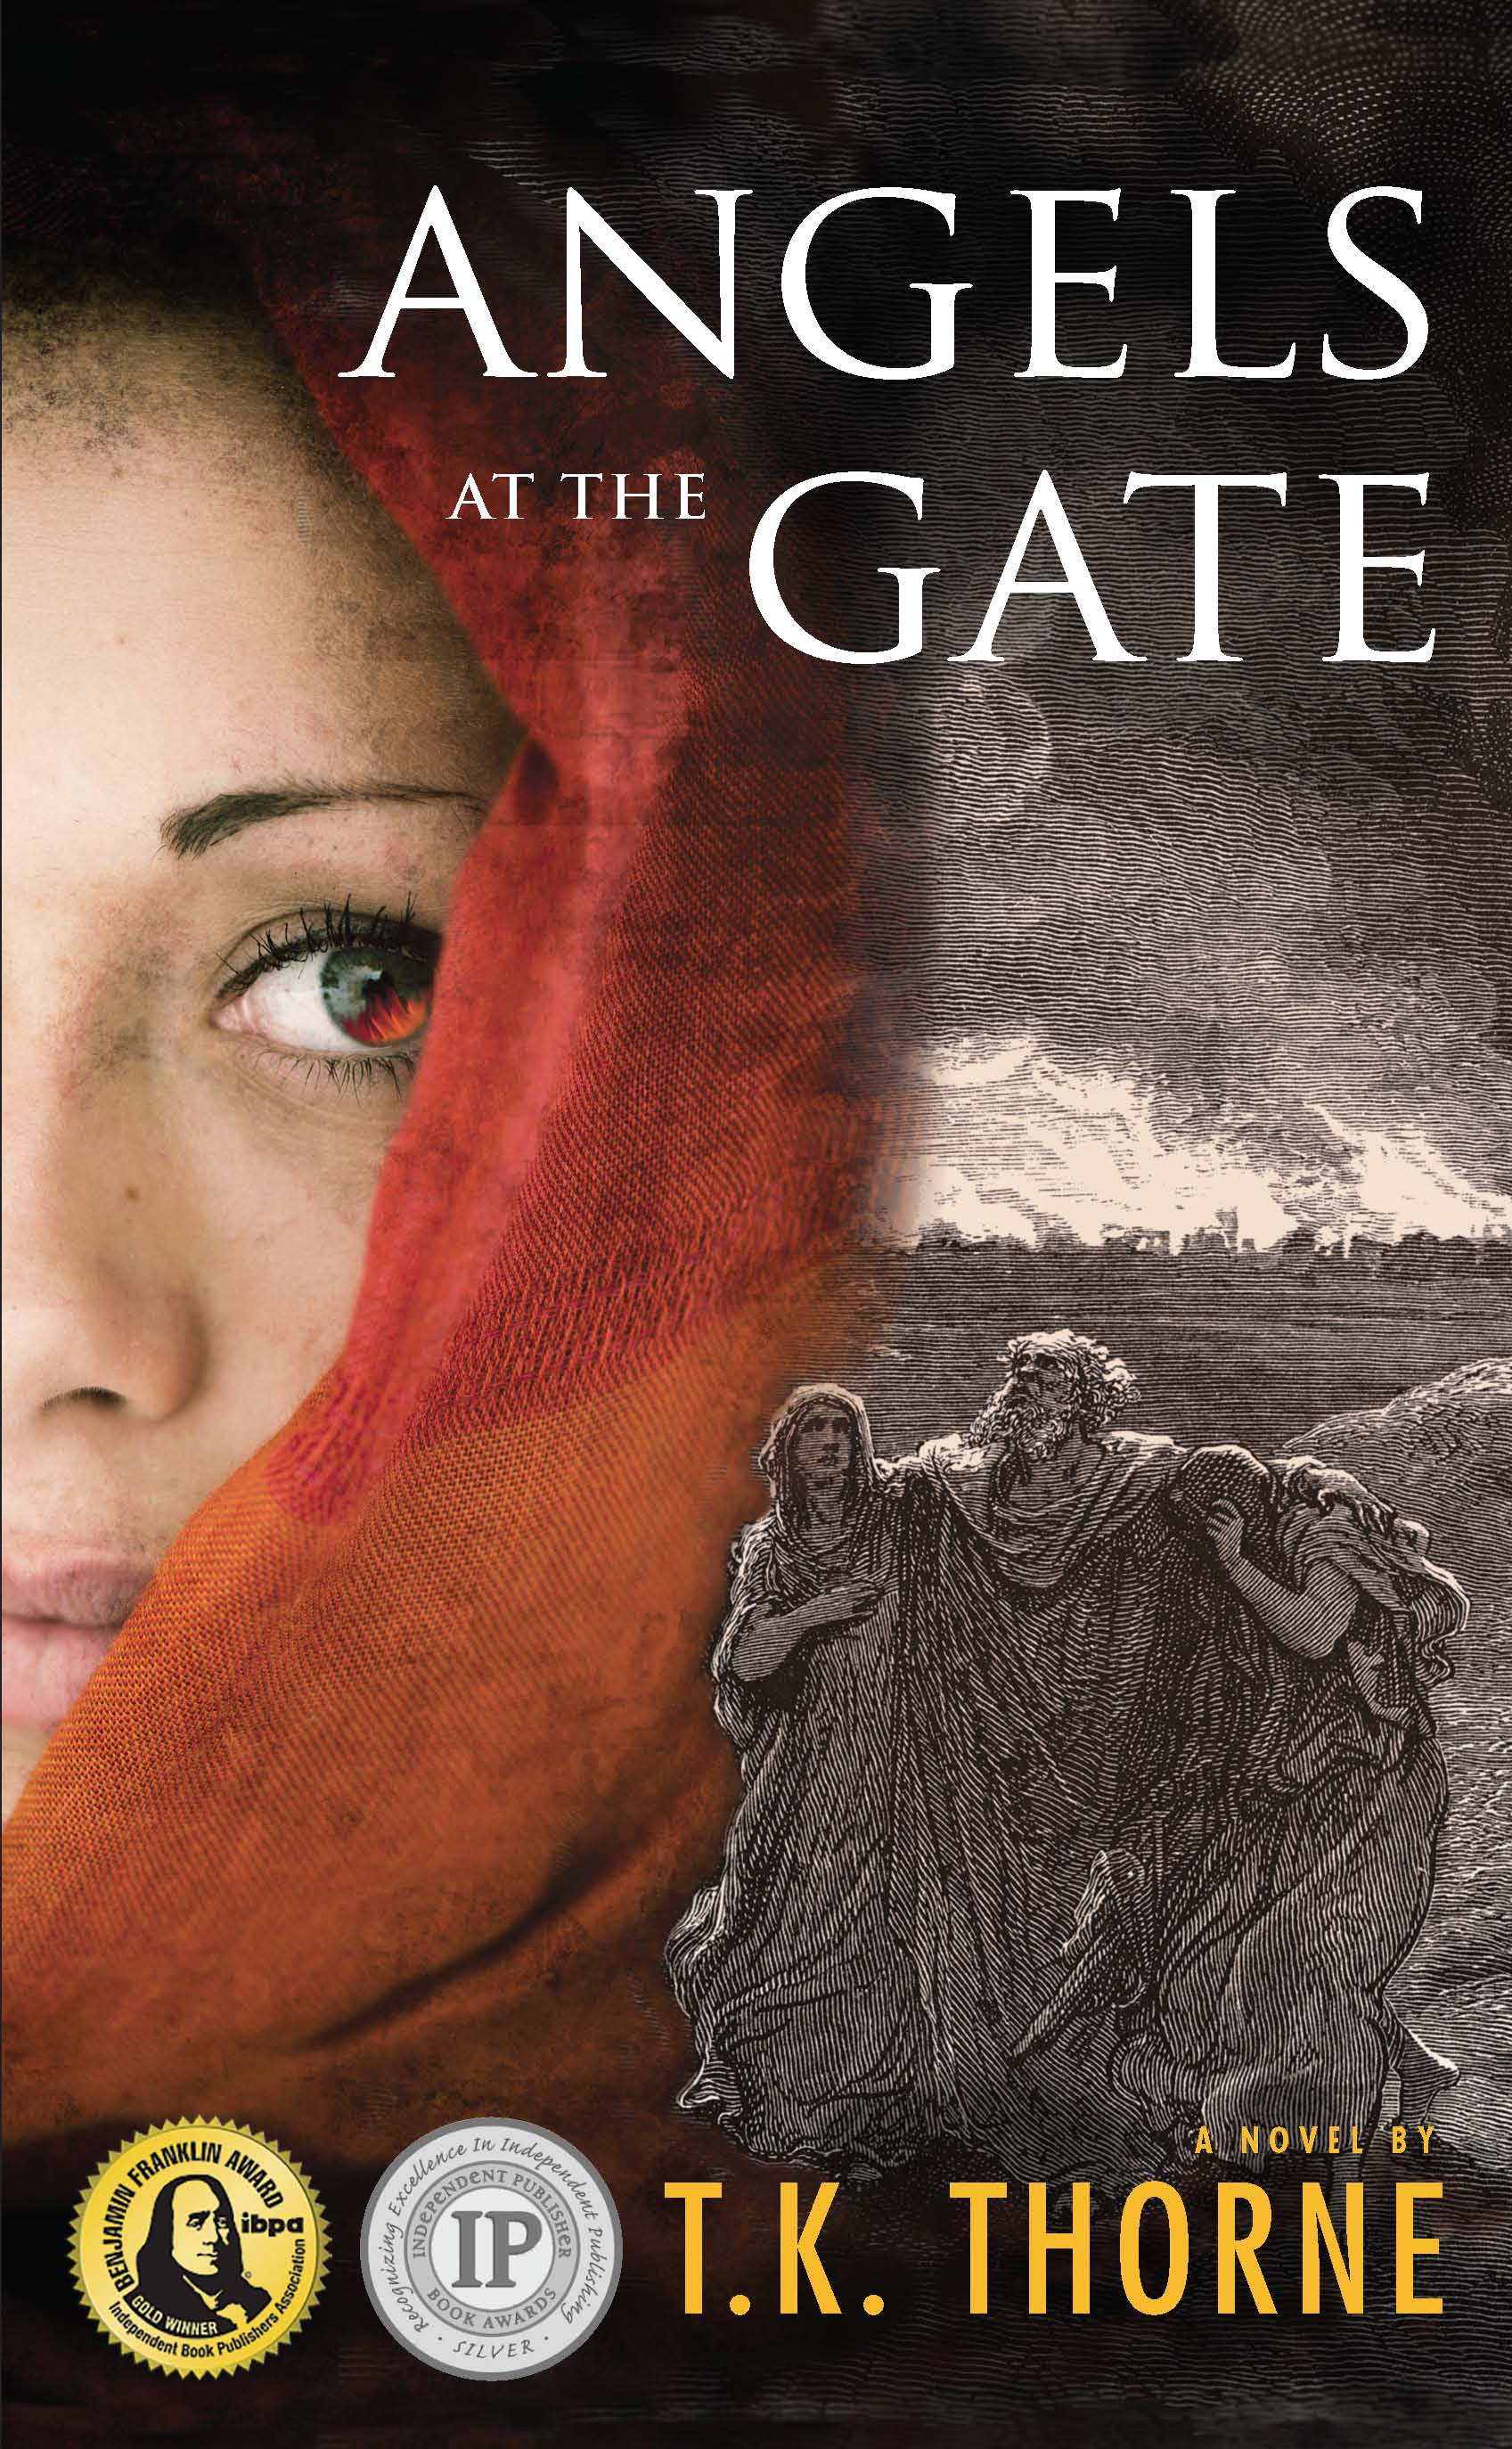 Angels at the Gate